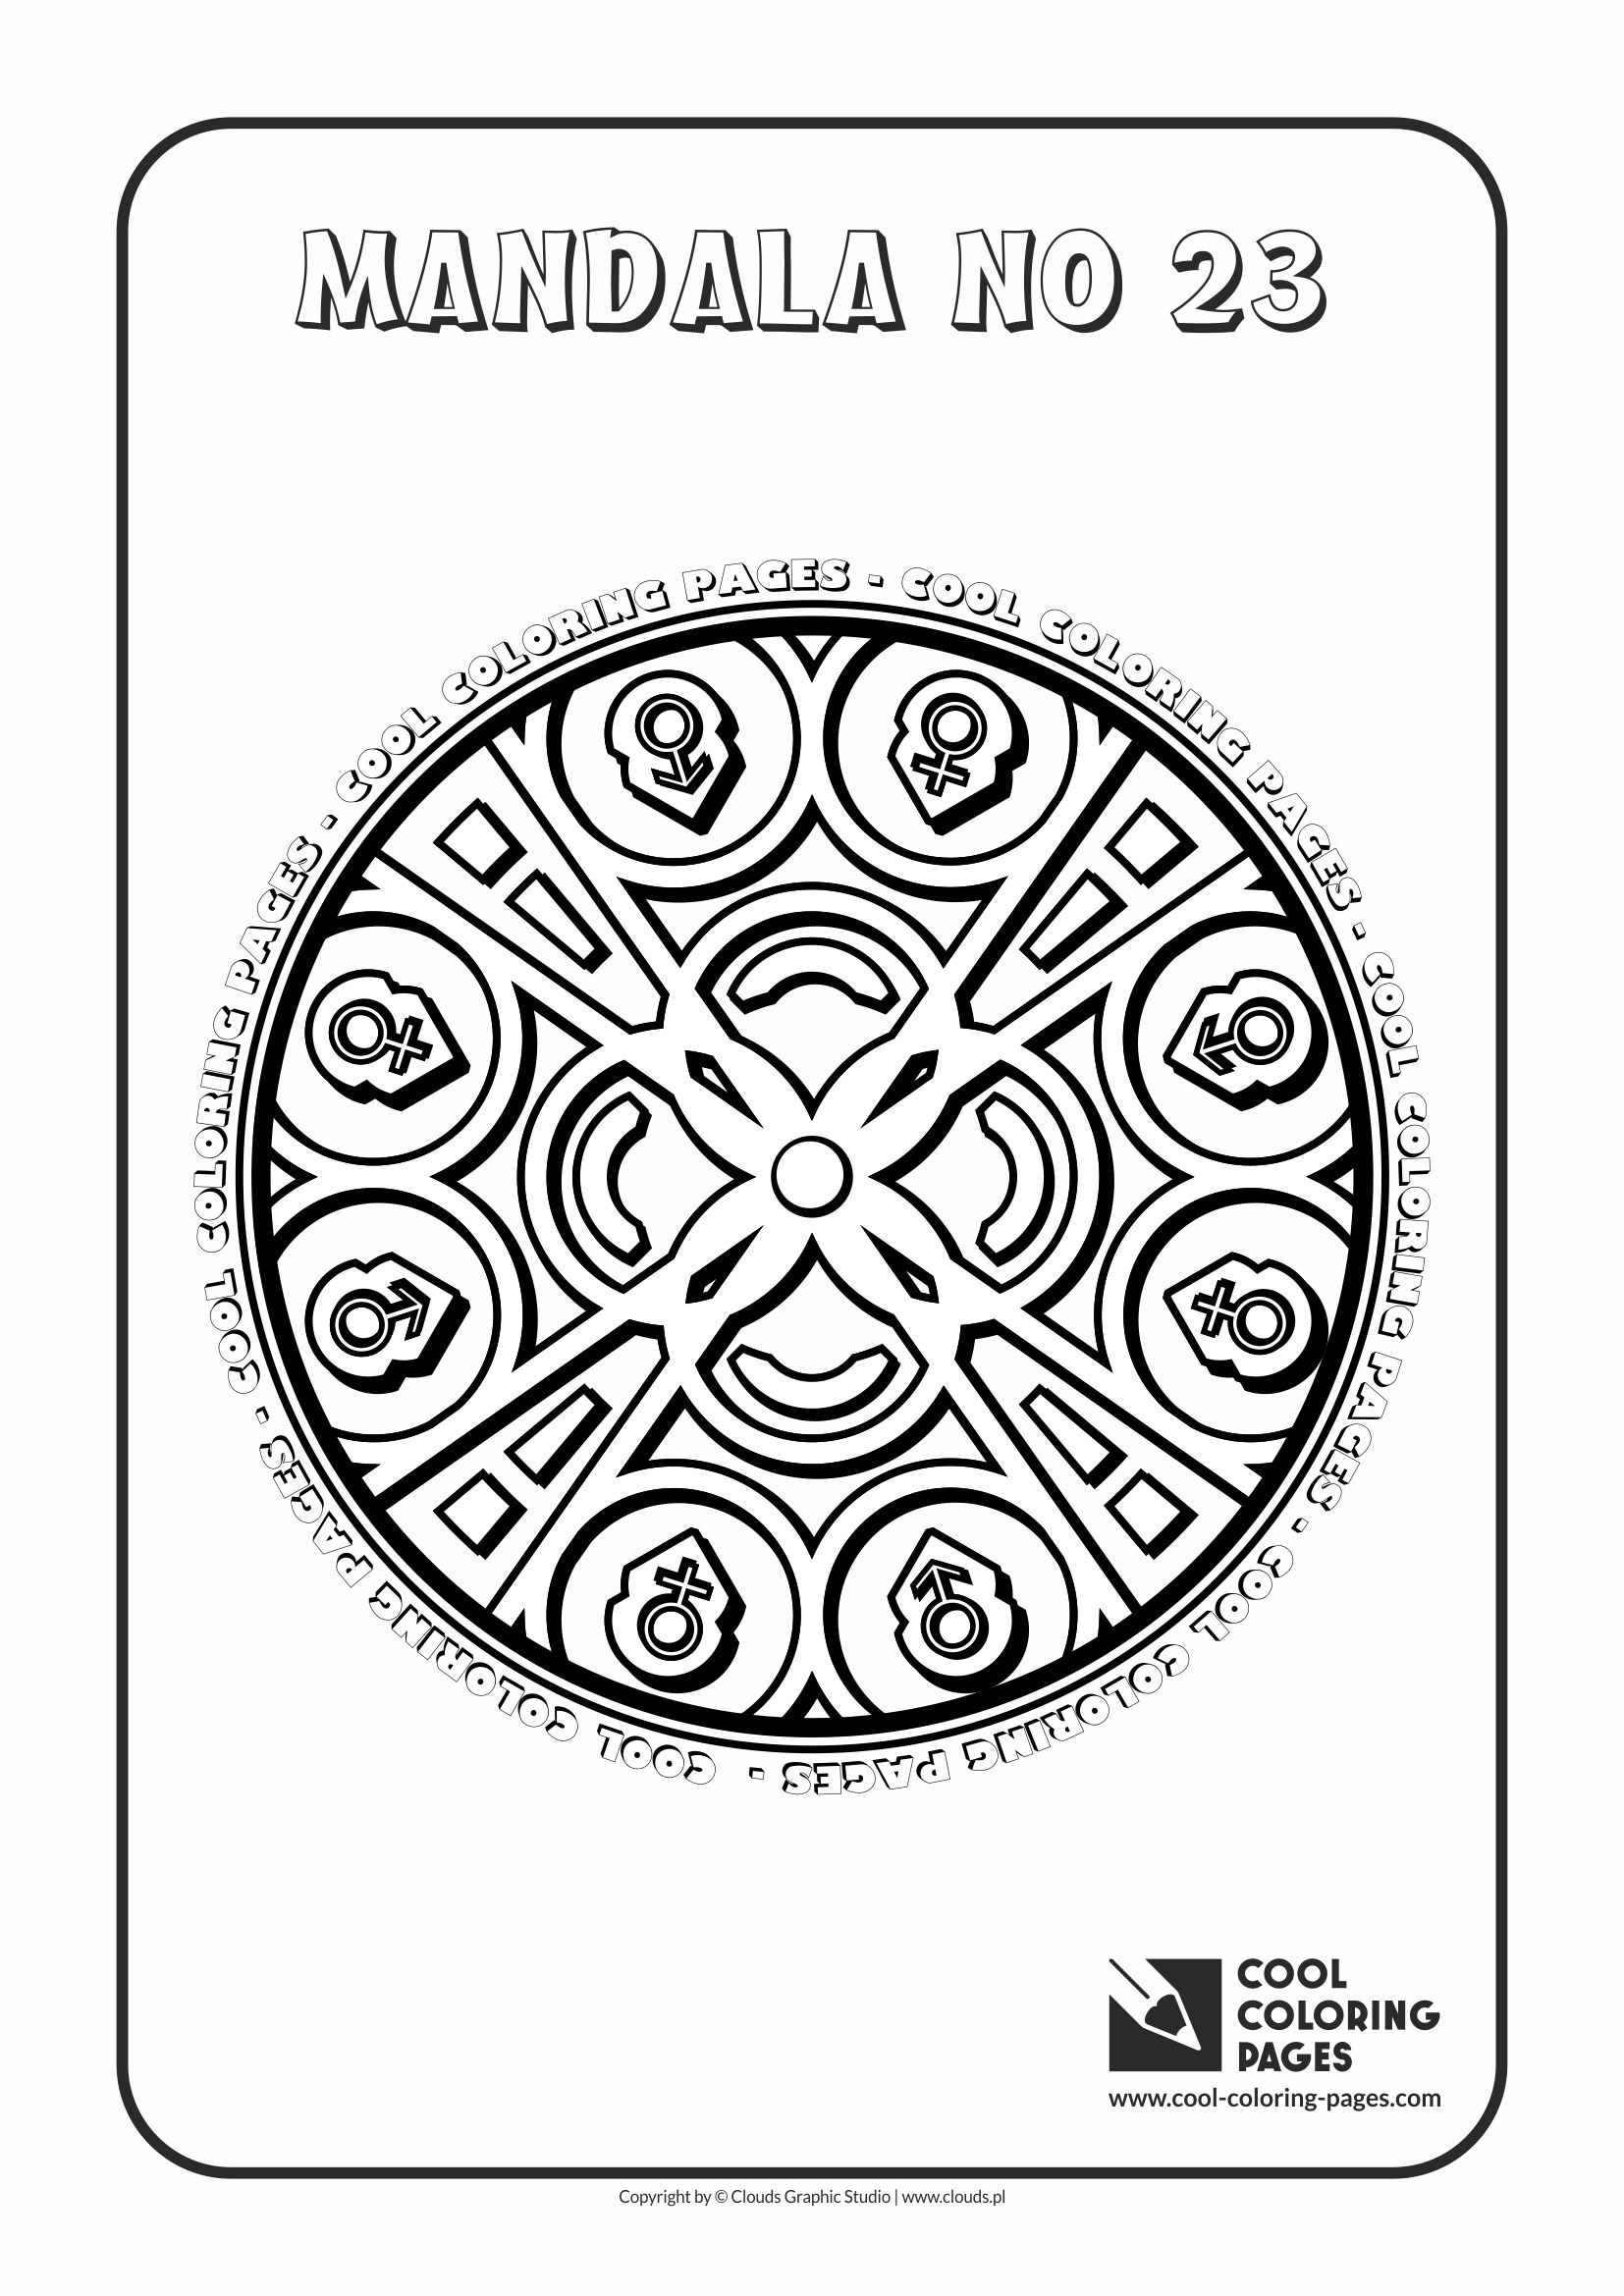 Cool Coloring Pages - Mandalas / Mandala no 23